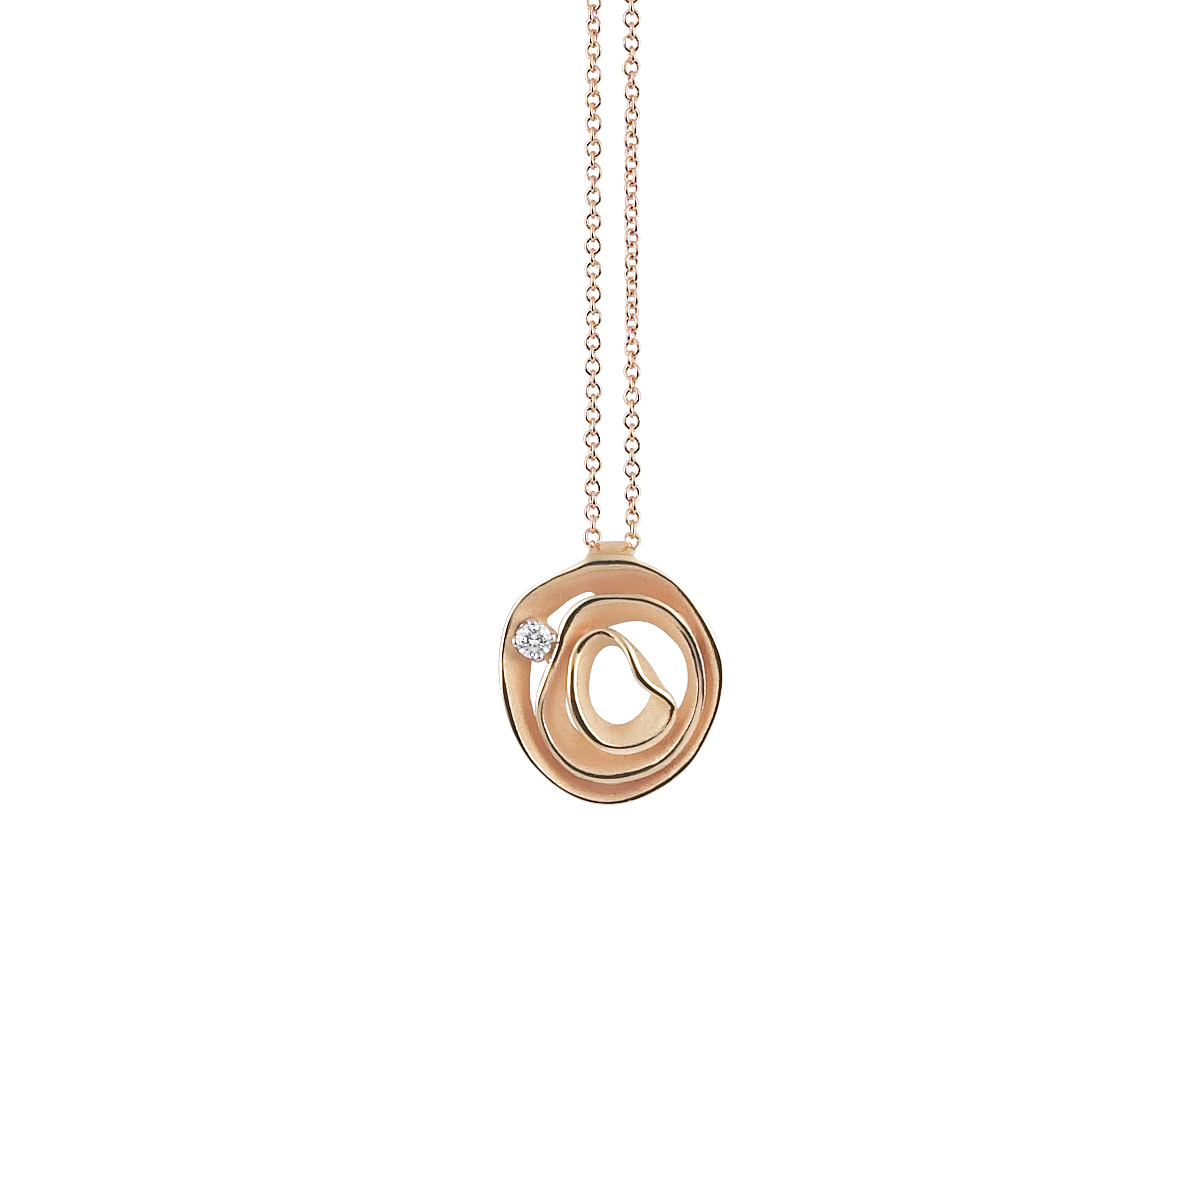 Anna Maria Cammilli Rose Gold And Diamond Dune Pendant.